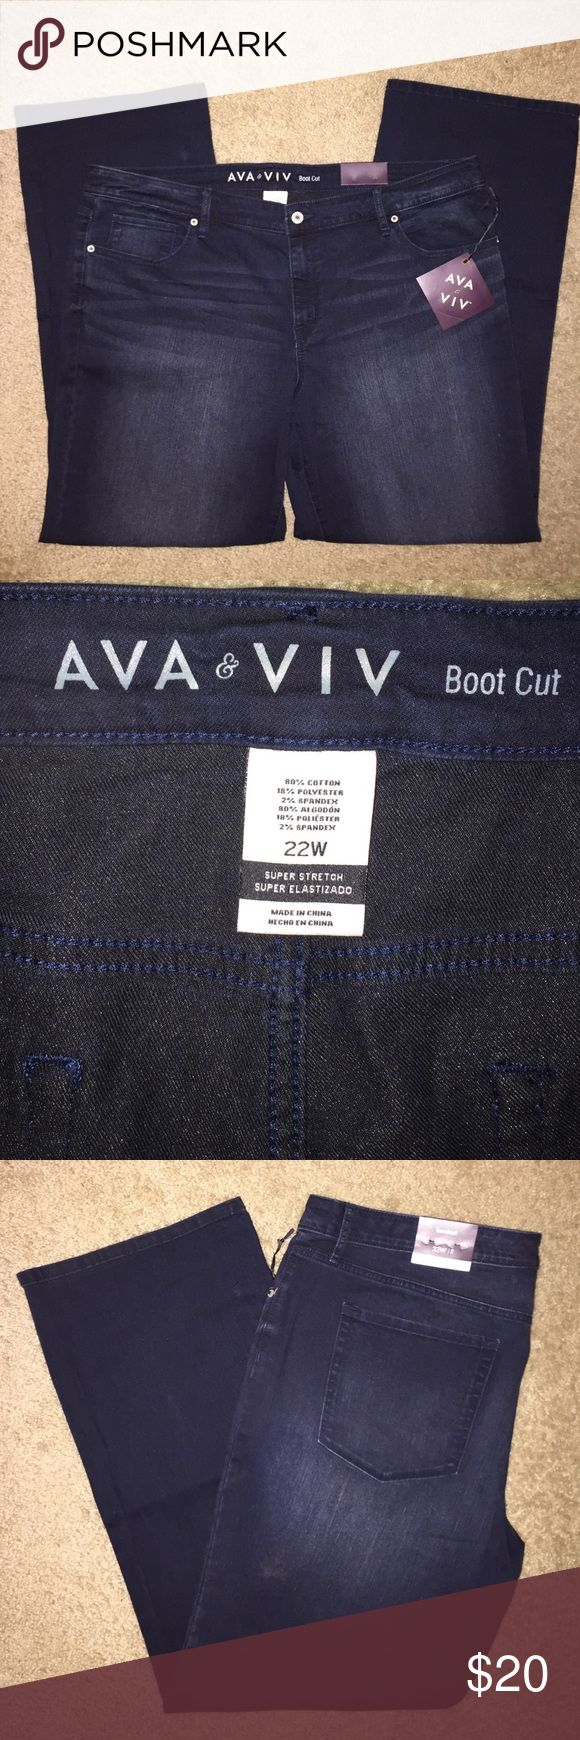 Ava & Viv Super Stretch Boot Cut Dark Wash Jeans Ava & Viv Super Stretch Boot Cut Dark Wash Jeans. Size 22, and never been worn. In great condition! Ava & Viv Jeans Boot Cut